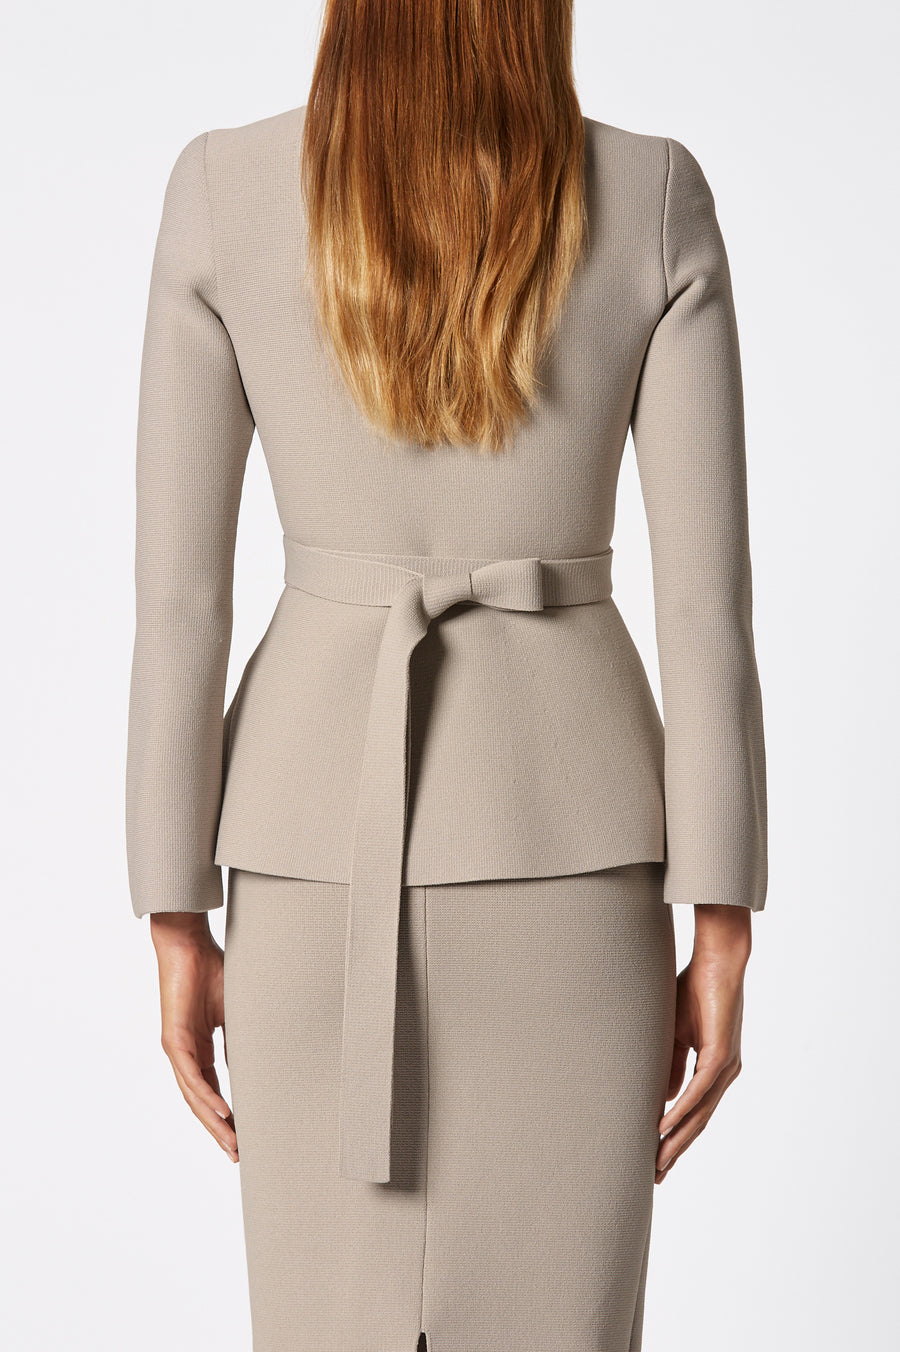 The Crepe Knit Ruffle Jacket is a tailored jacket that features a zip front, waist belt, and ruffled hem